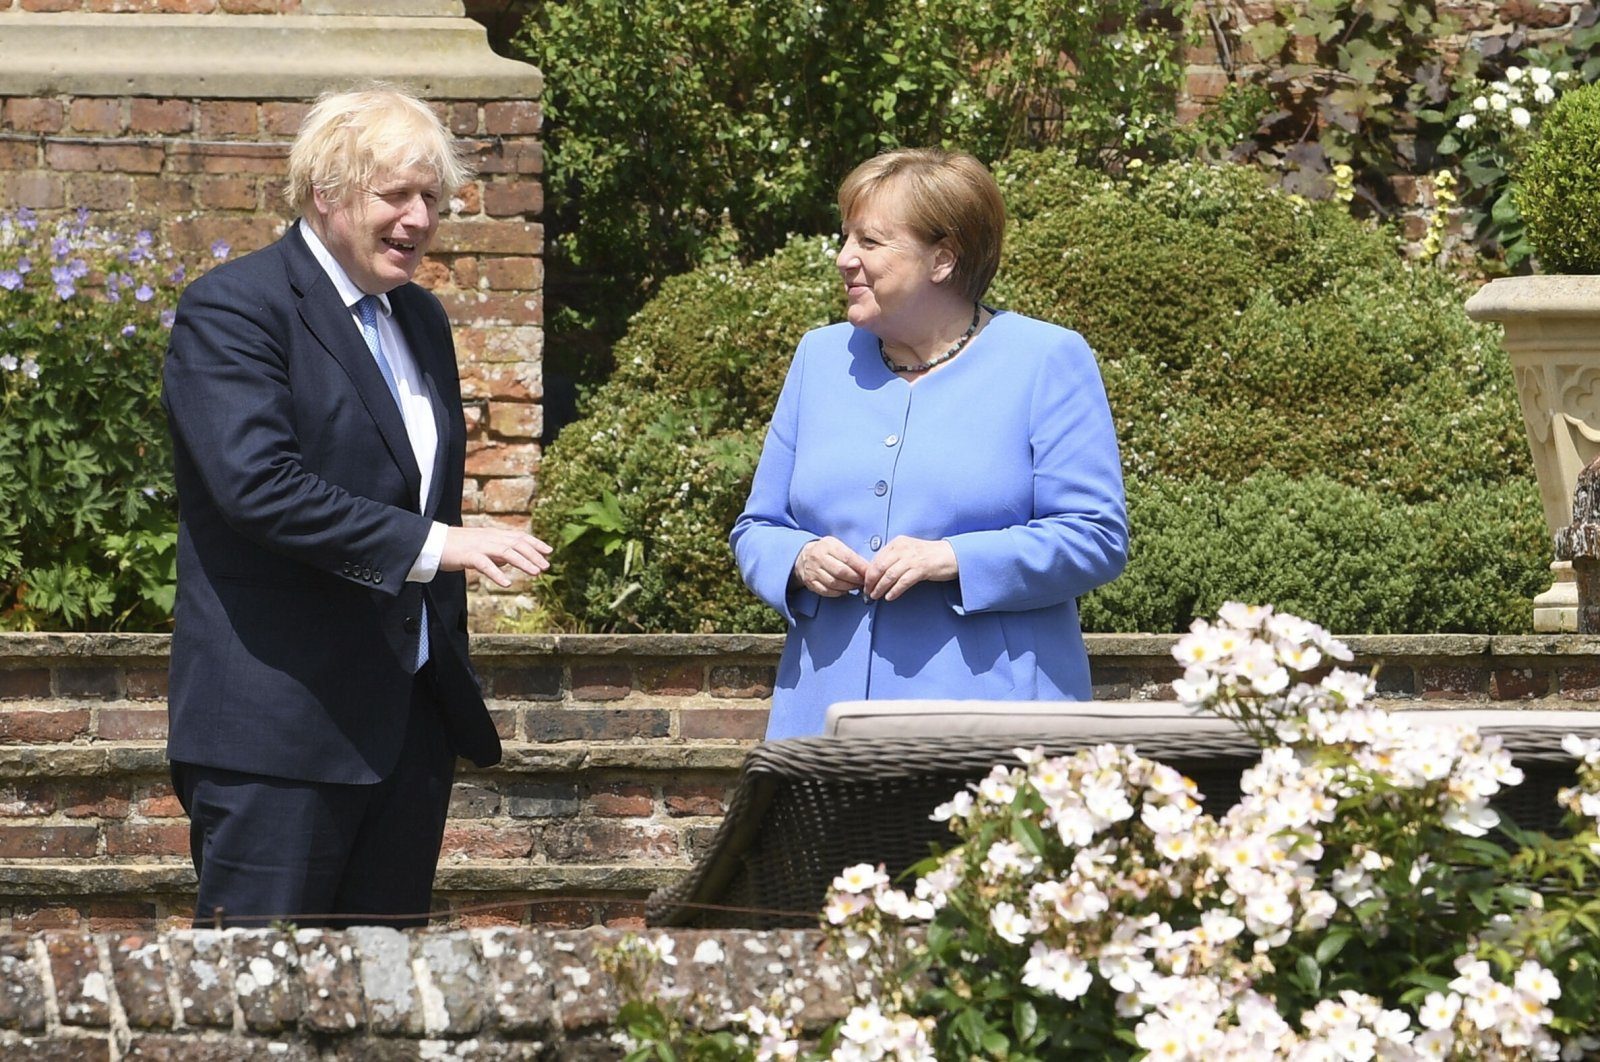 Britain's Prime Minister Boris Johnson (L) and German Chancellor Angela Merkel, walk through the garden at Chequers, the country house of the Prime Minister, in Buckinghamshire, England, July 2, 2021. (AP Photo)